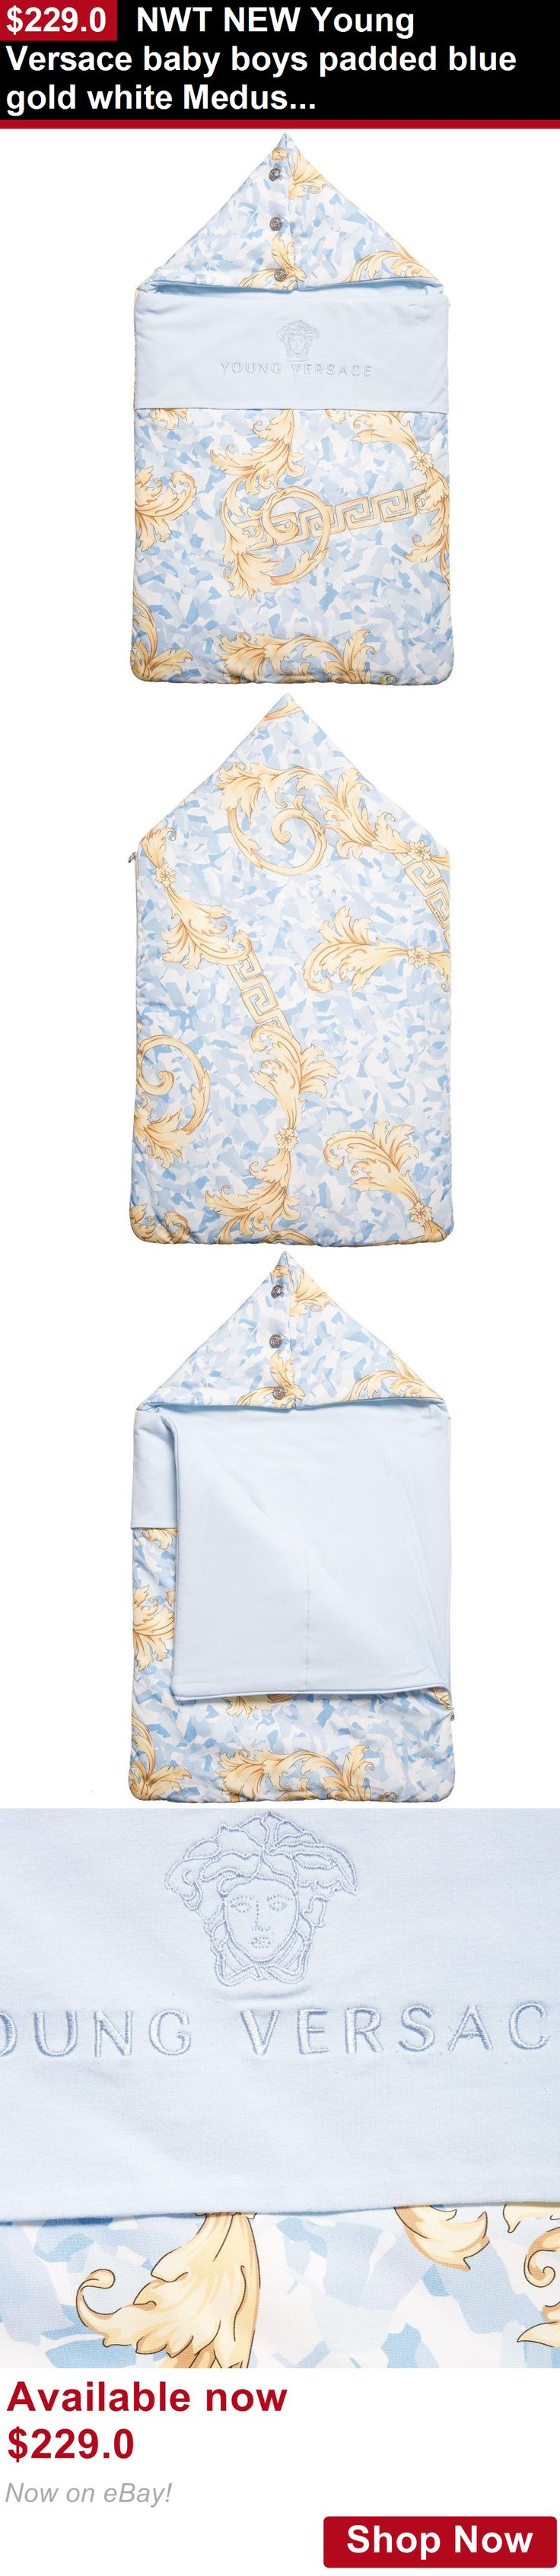 Sleeping Bags And Sleepsacks: Nwt New Young Versace Baby Boys Padded Blue Gold White Medusa Sleeping Bag Nest BUY IT NOW ONLY: $229.0